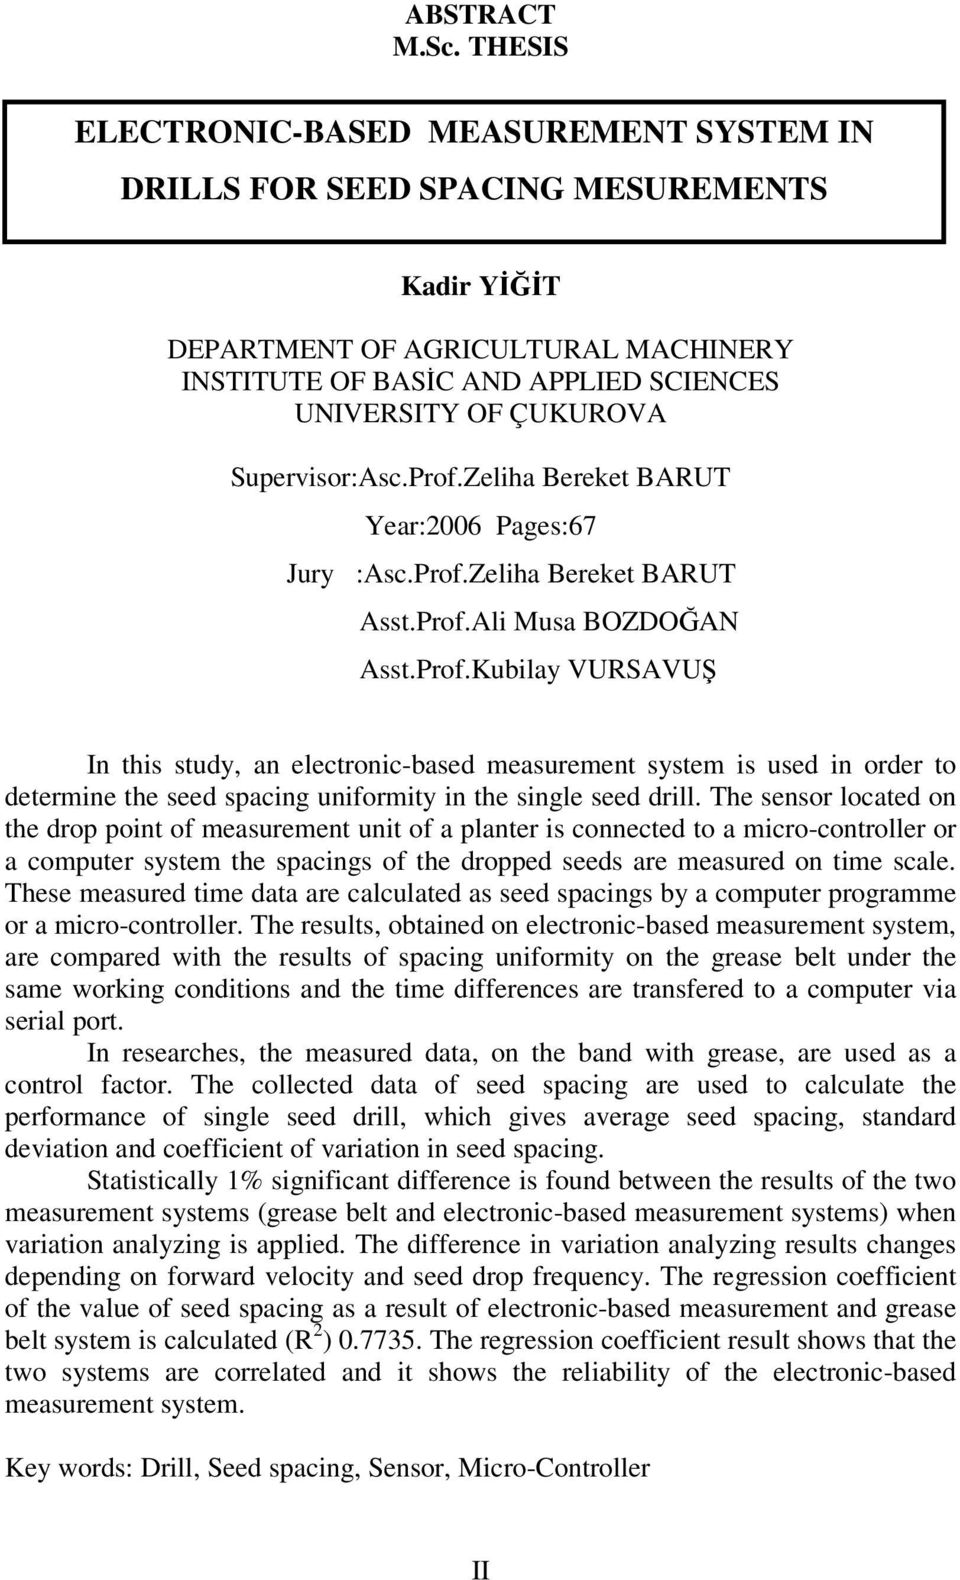 Supervisor:Asc.Prof.Zeliha Bereket BARUT Year:2006 Pages:67 Jury :Asc.Prof.Zeliha Bereket BARUT Asst.Prof.Ali Musa BOZDOĞAN Asst.Prof.Kubilay VURSAVUŞ In this study, an electronic-based measurement system is used in order to determine the seed spacing uniformity in the single seed drill.